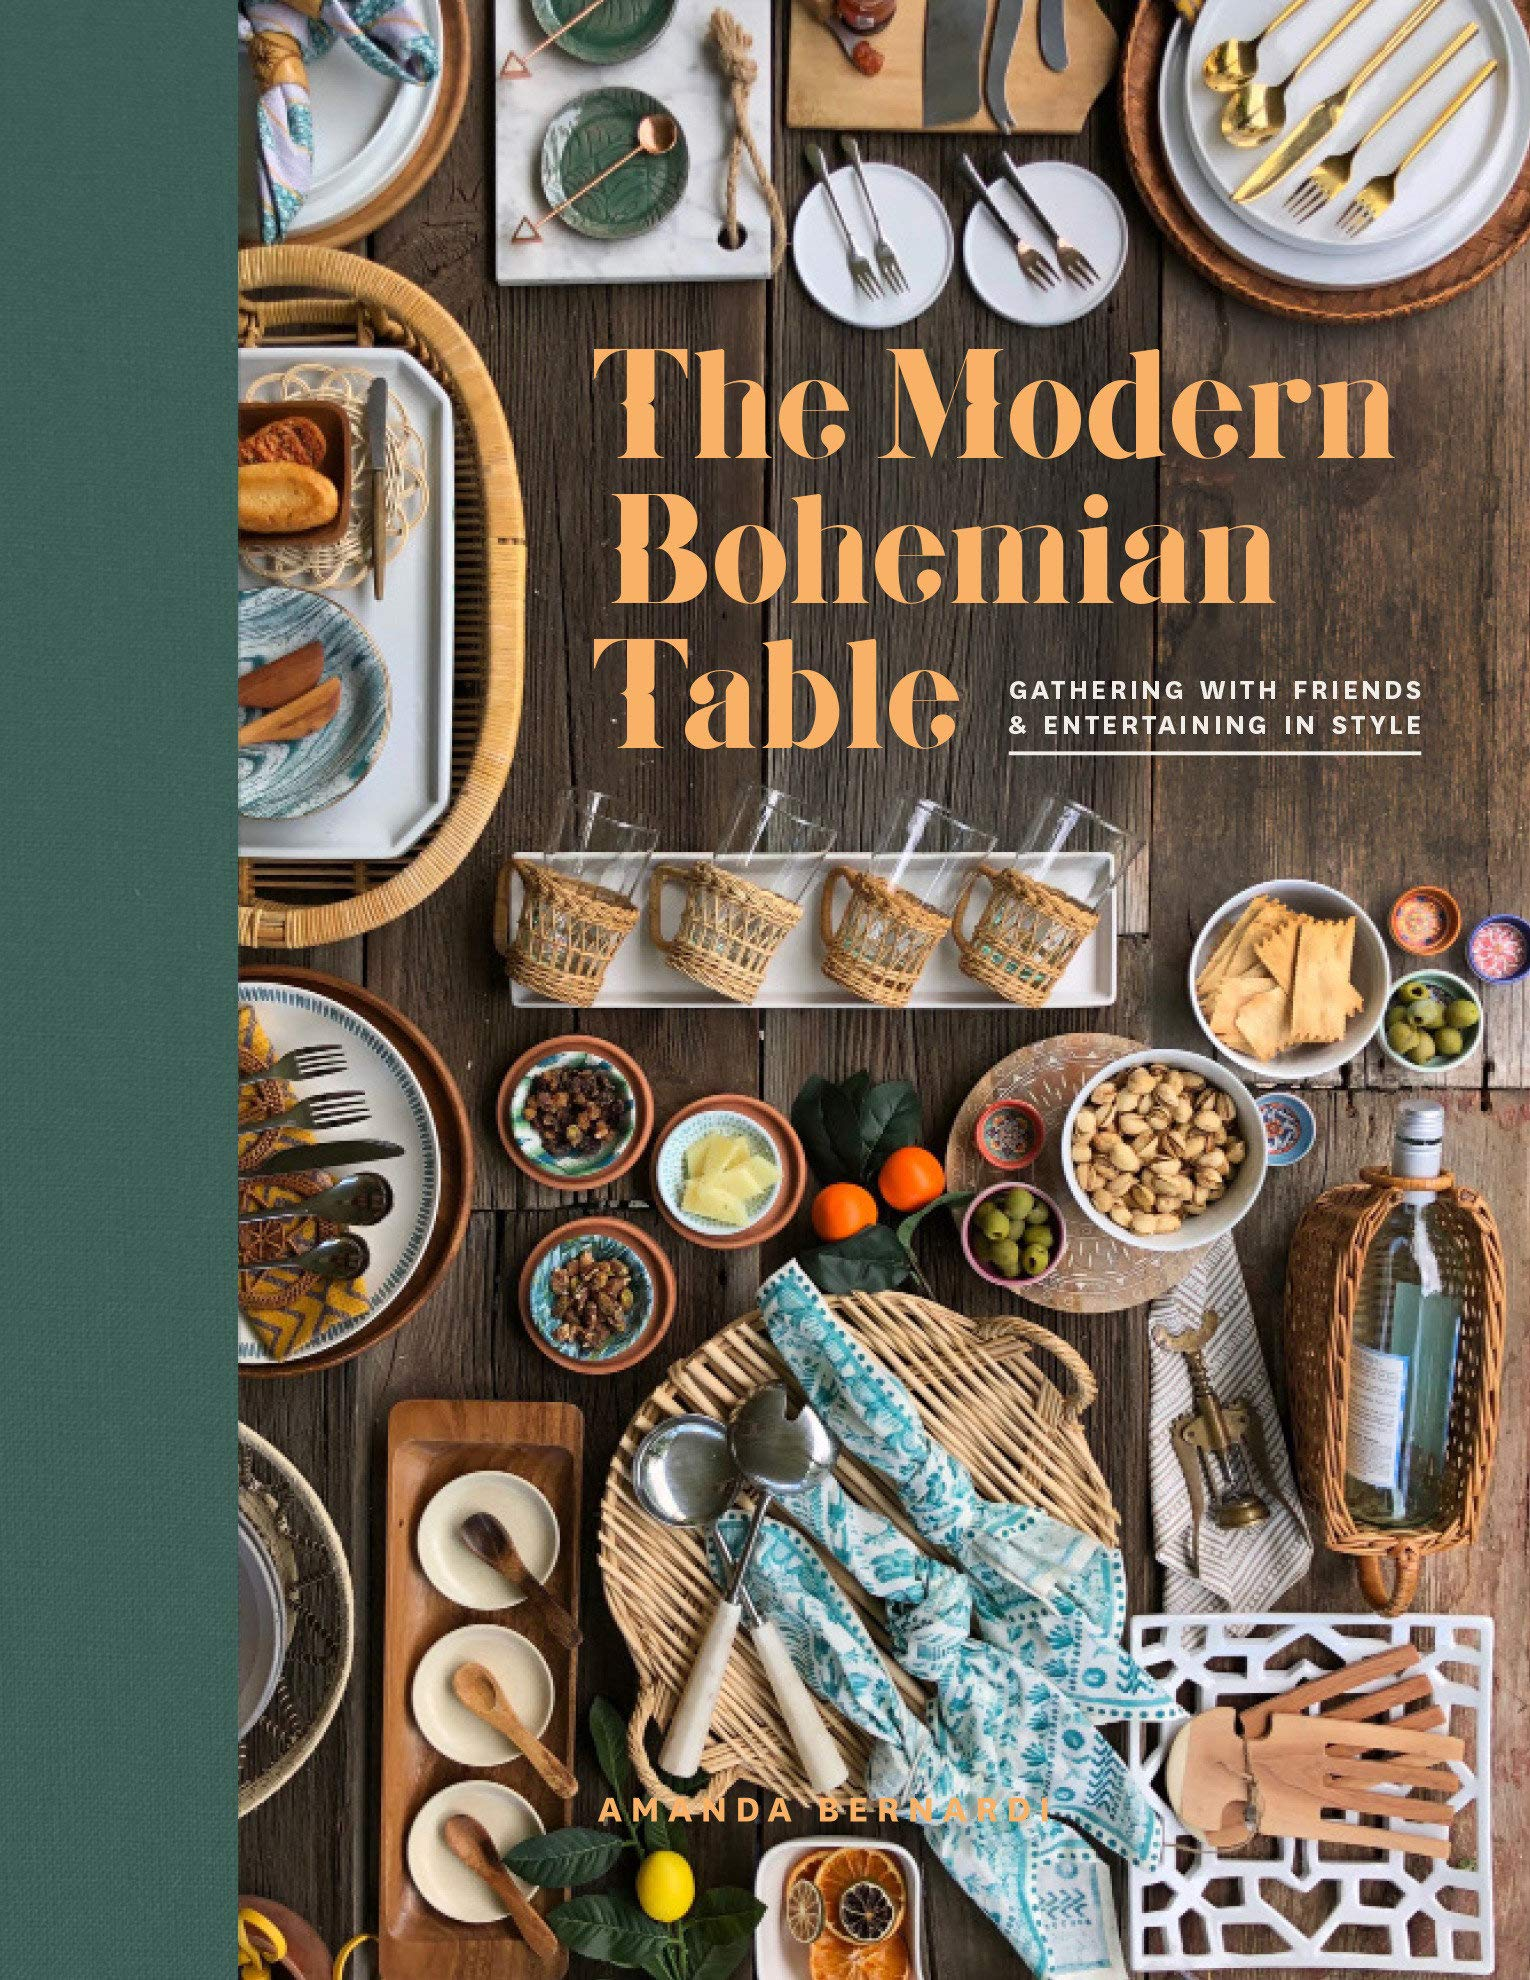 The Modern Bohemian Table